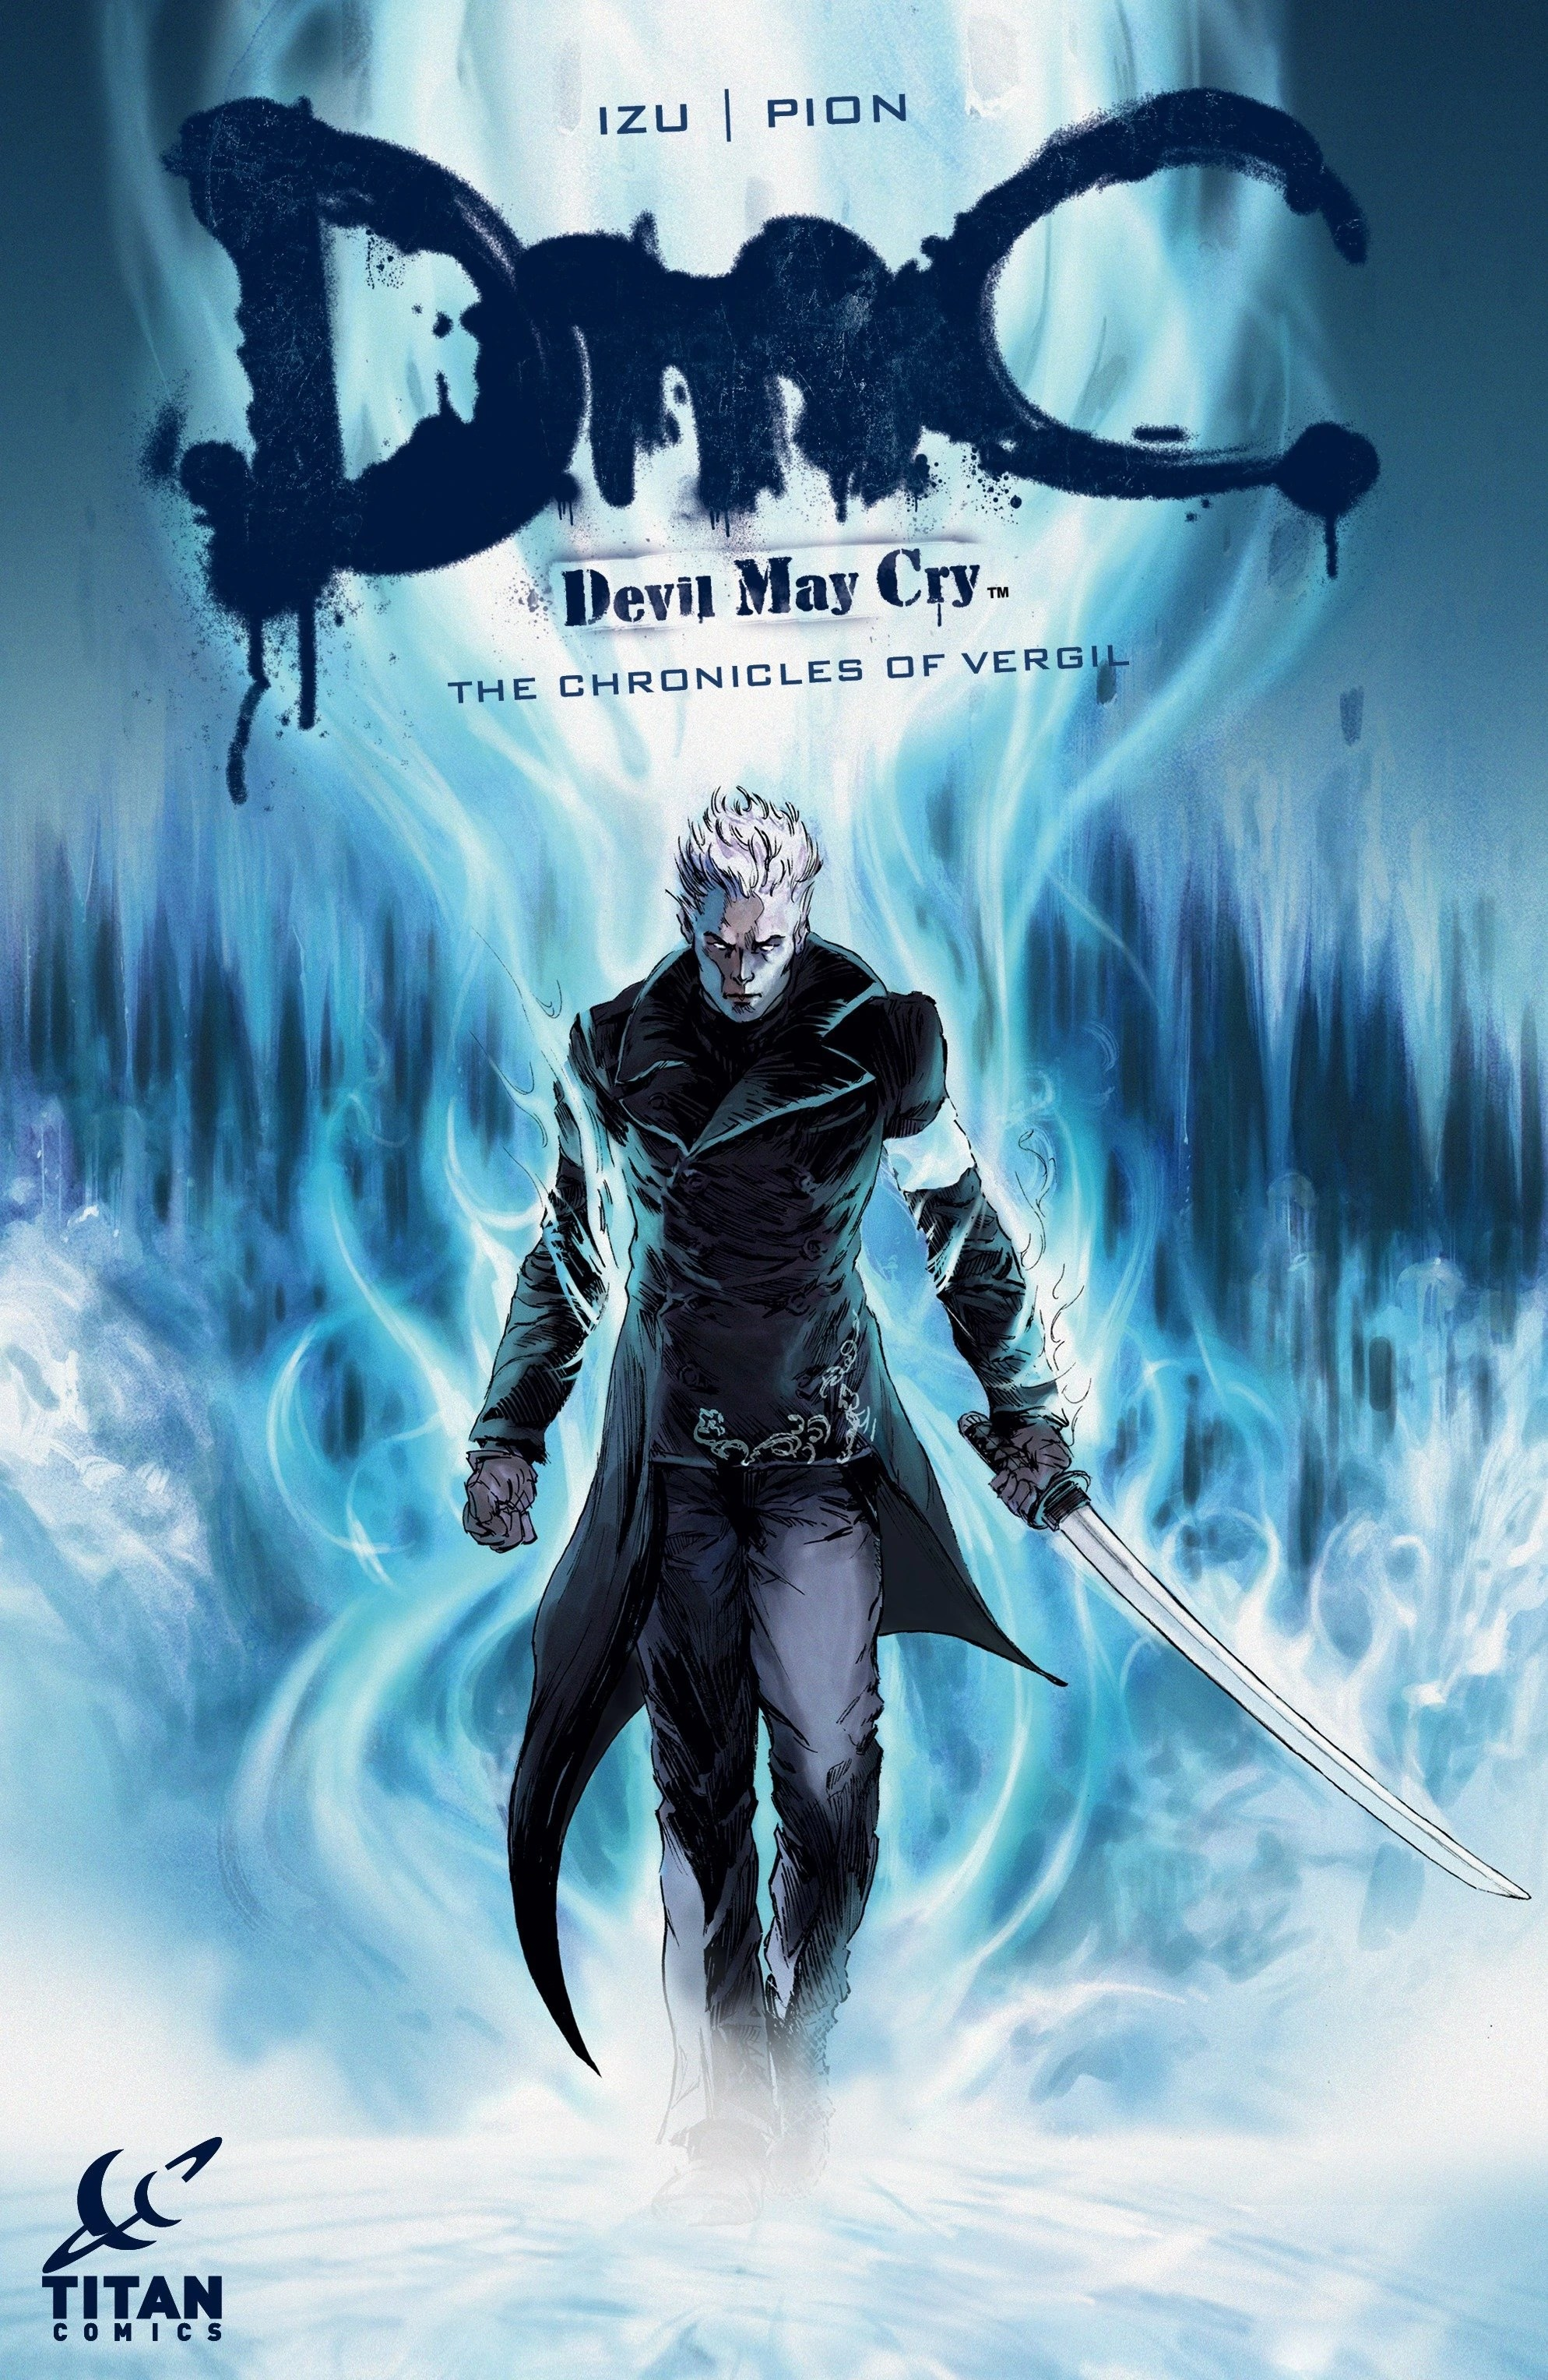 Jul 12, 2017· update 7/6/2021: DmC: Devil May Cry: The Chronicles of Vergil   Devil May